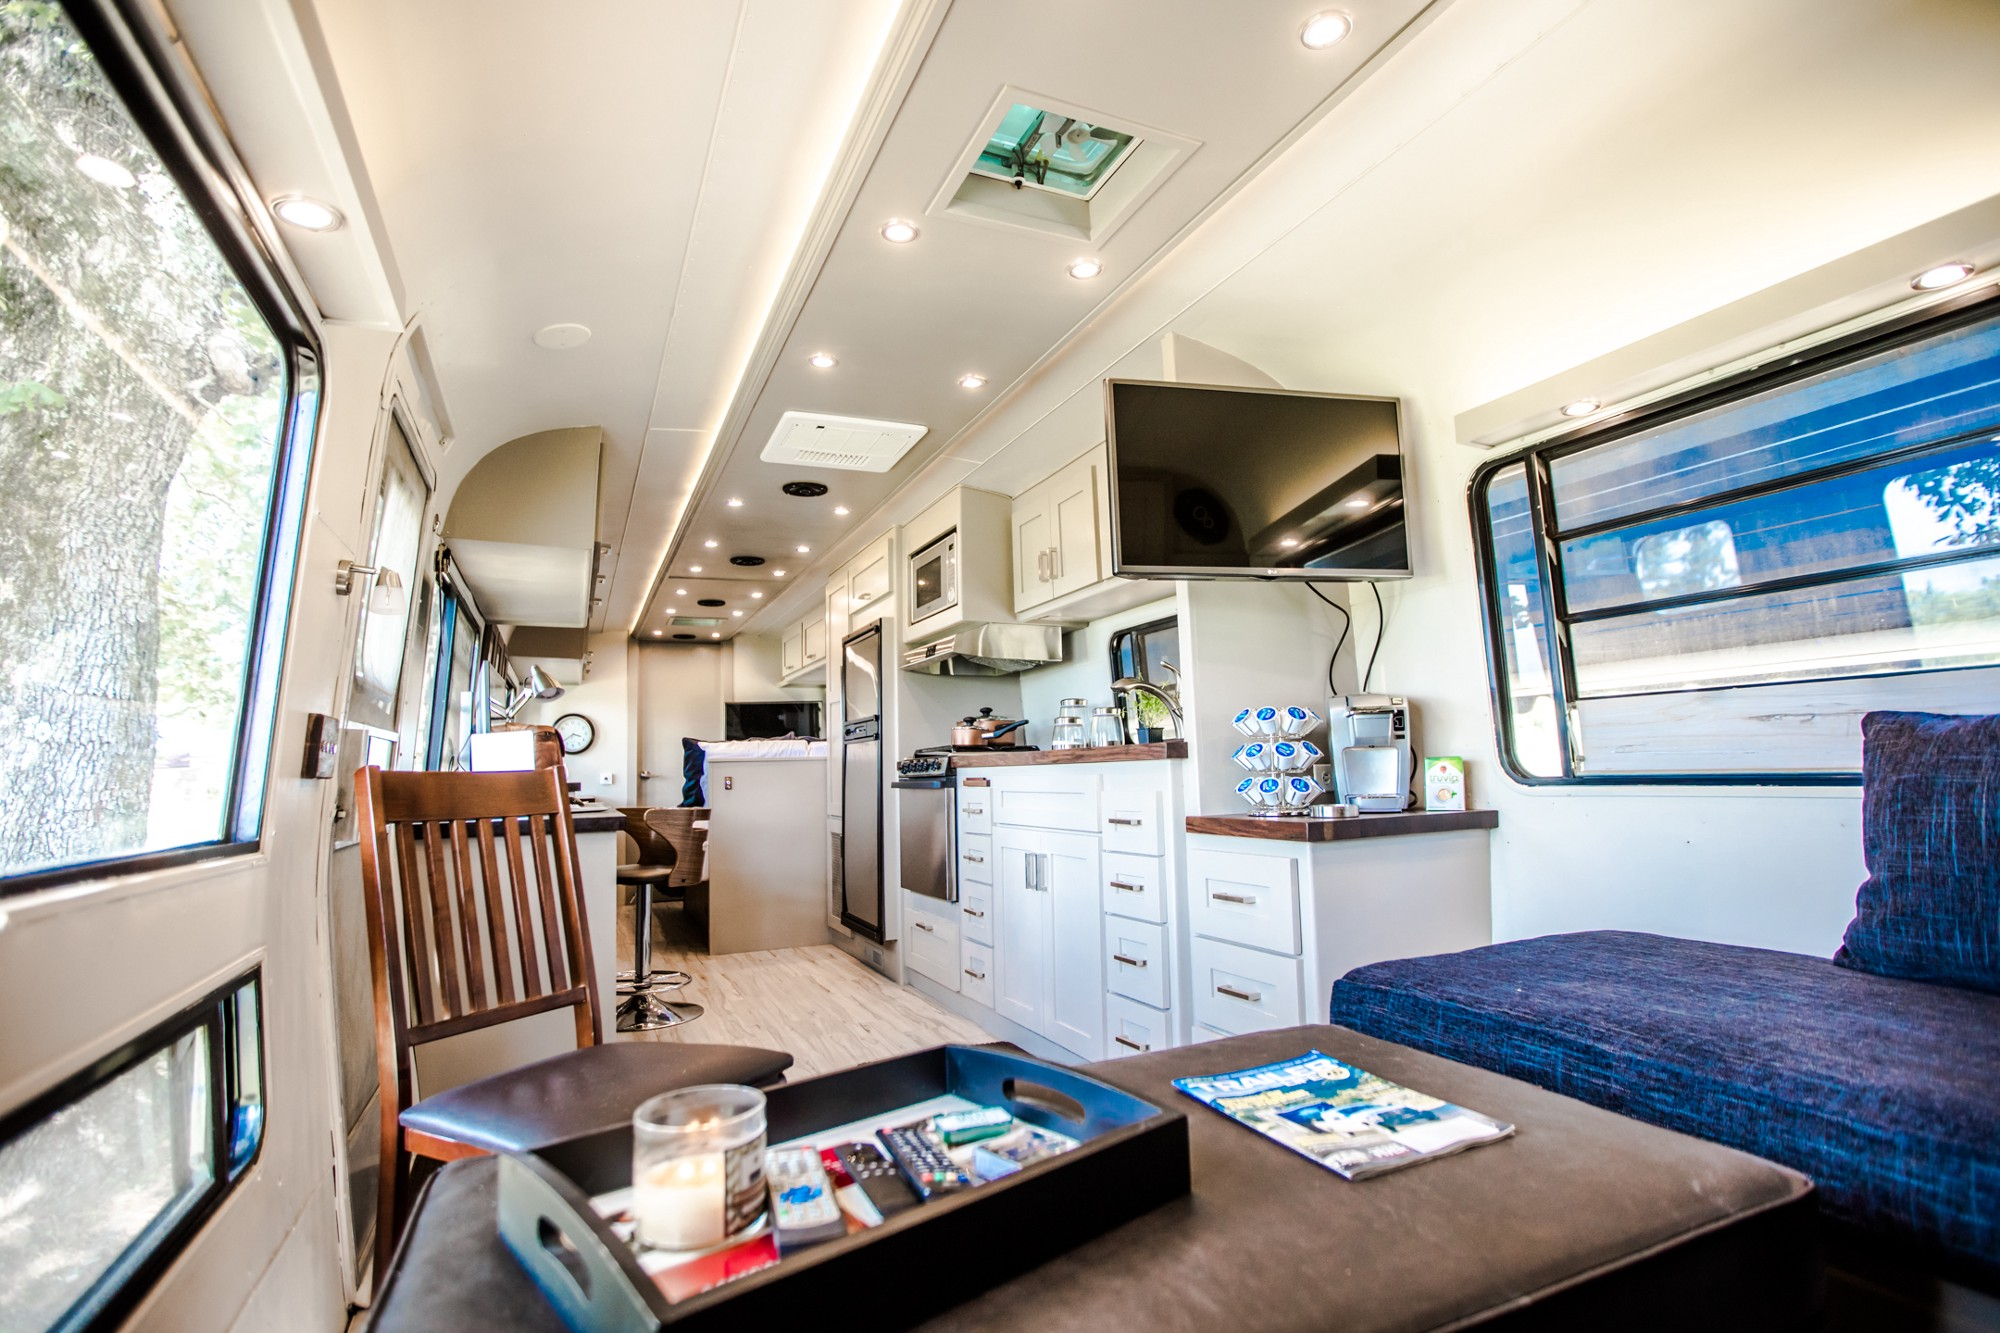 1988 RV: A Filmmaker's #TinyHome Remodel – Bailey Eubanks ...